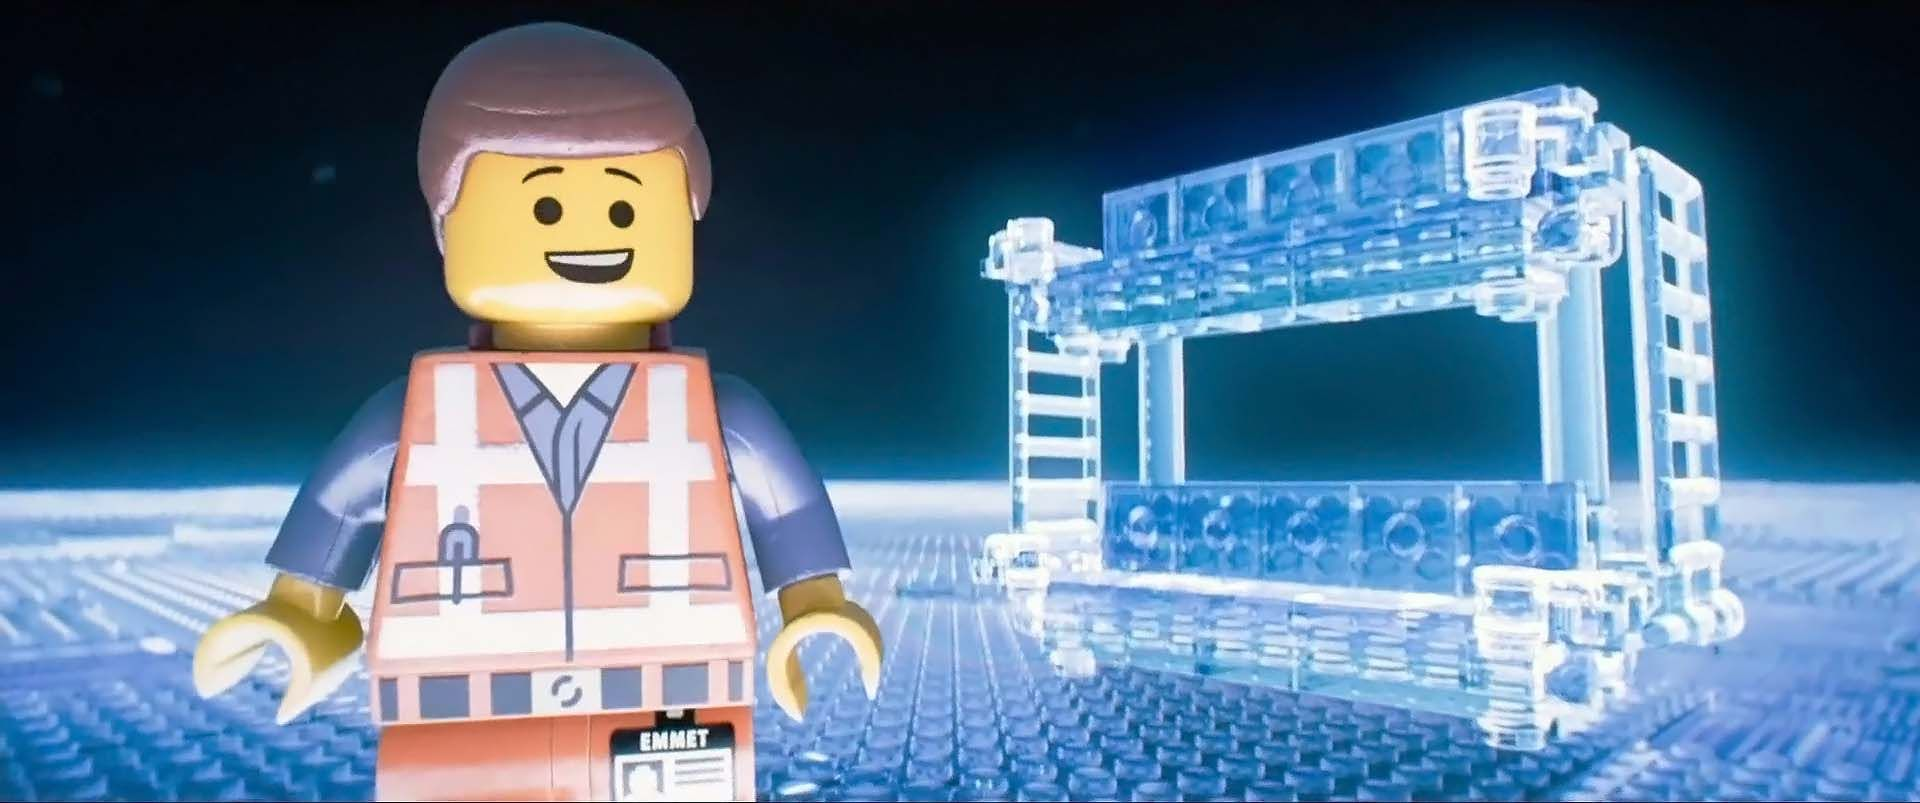 The Lego Movie The Lego Movie Wallpaper Hd The Lego Movie And